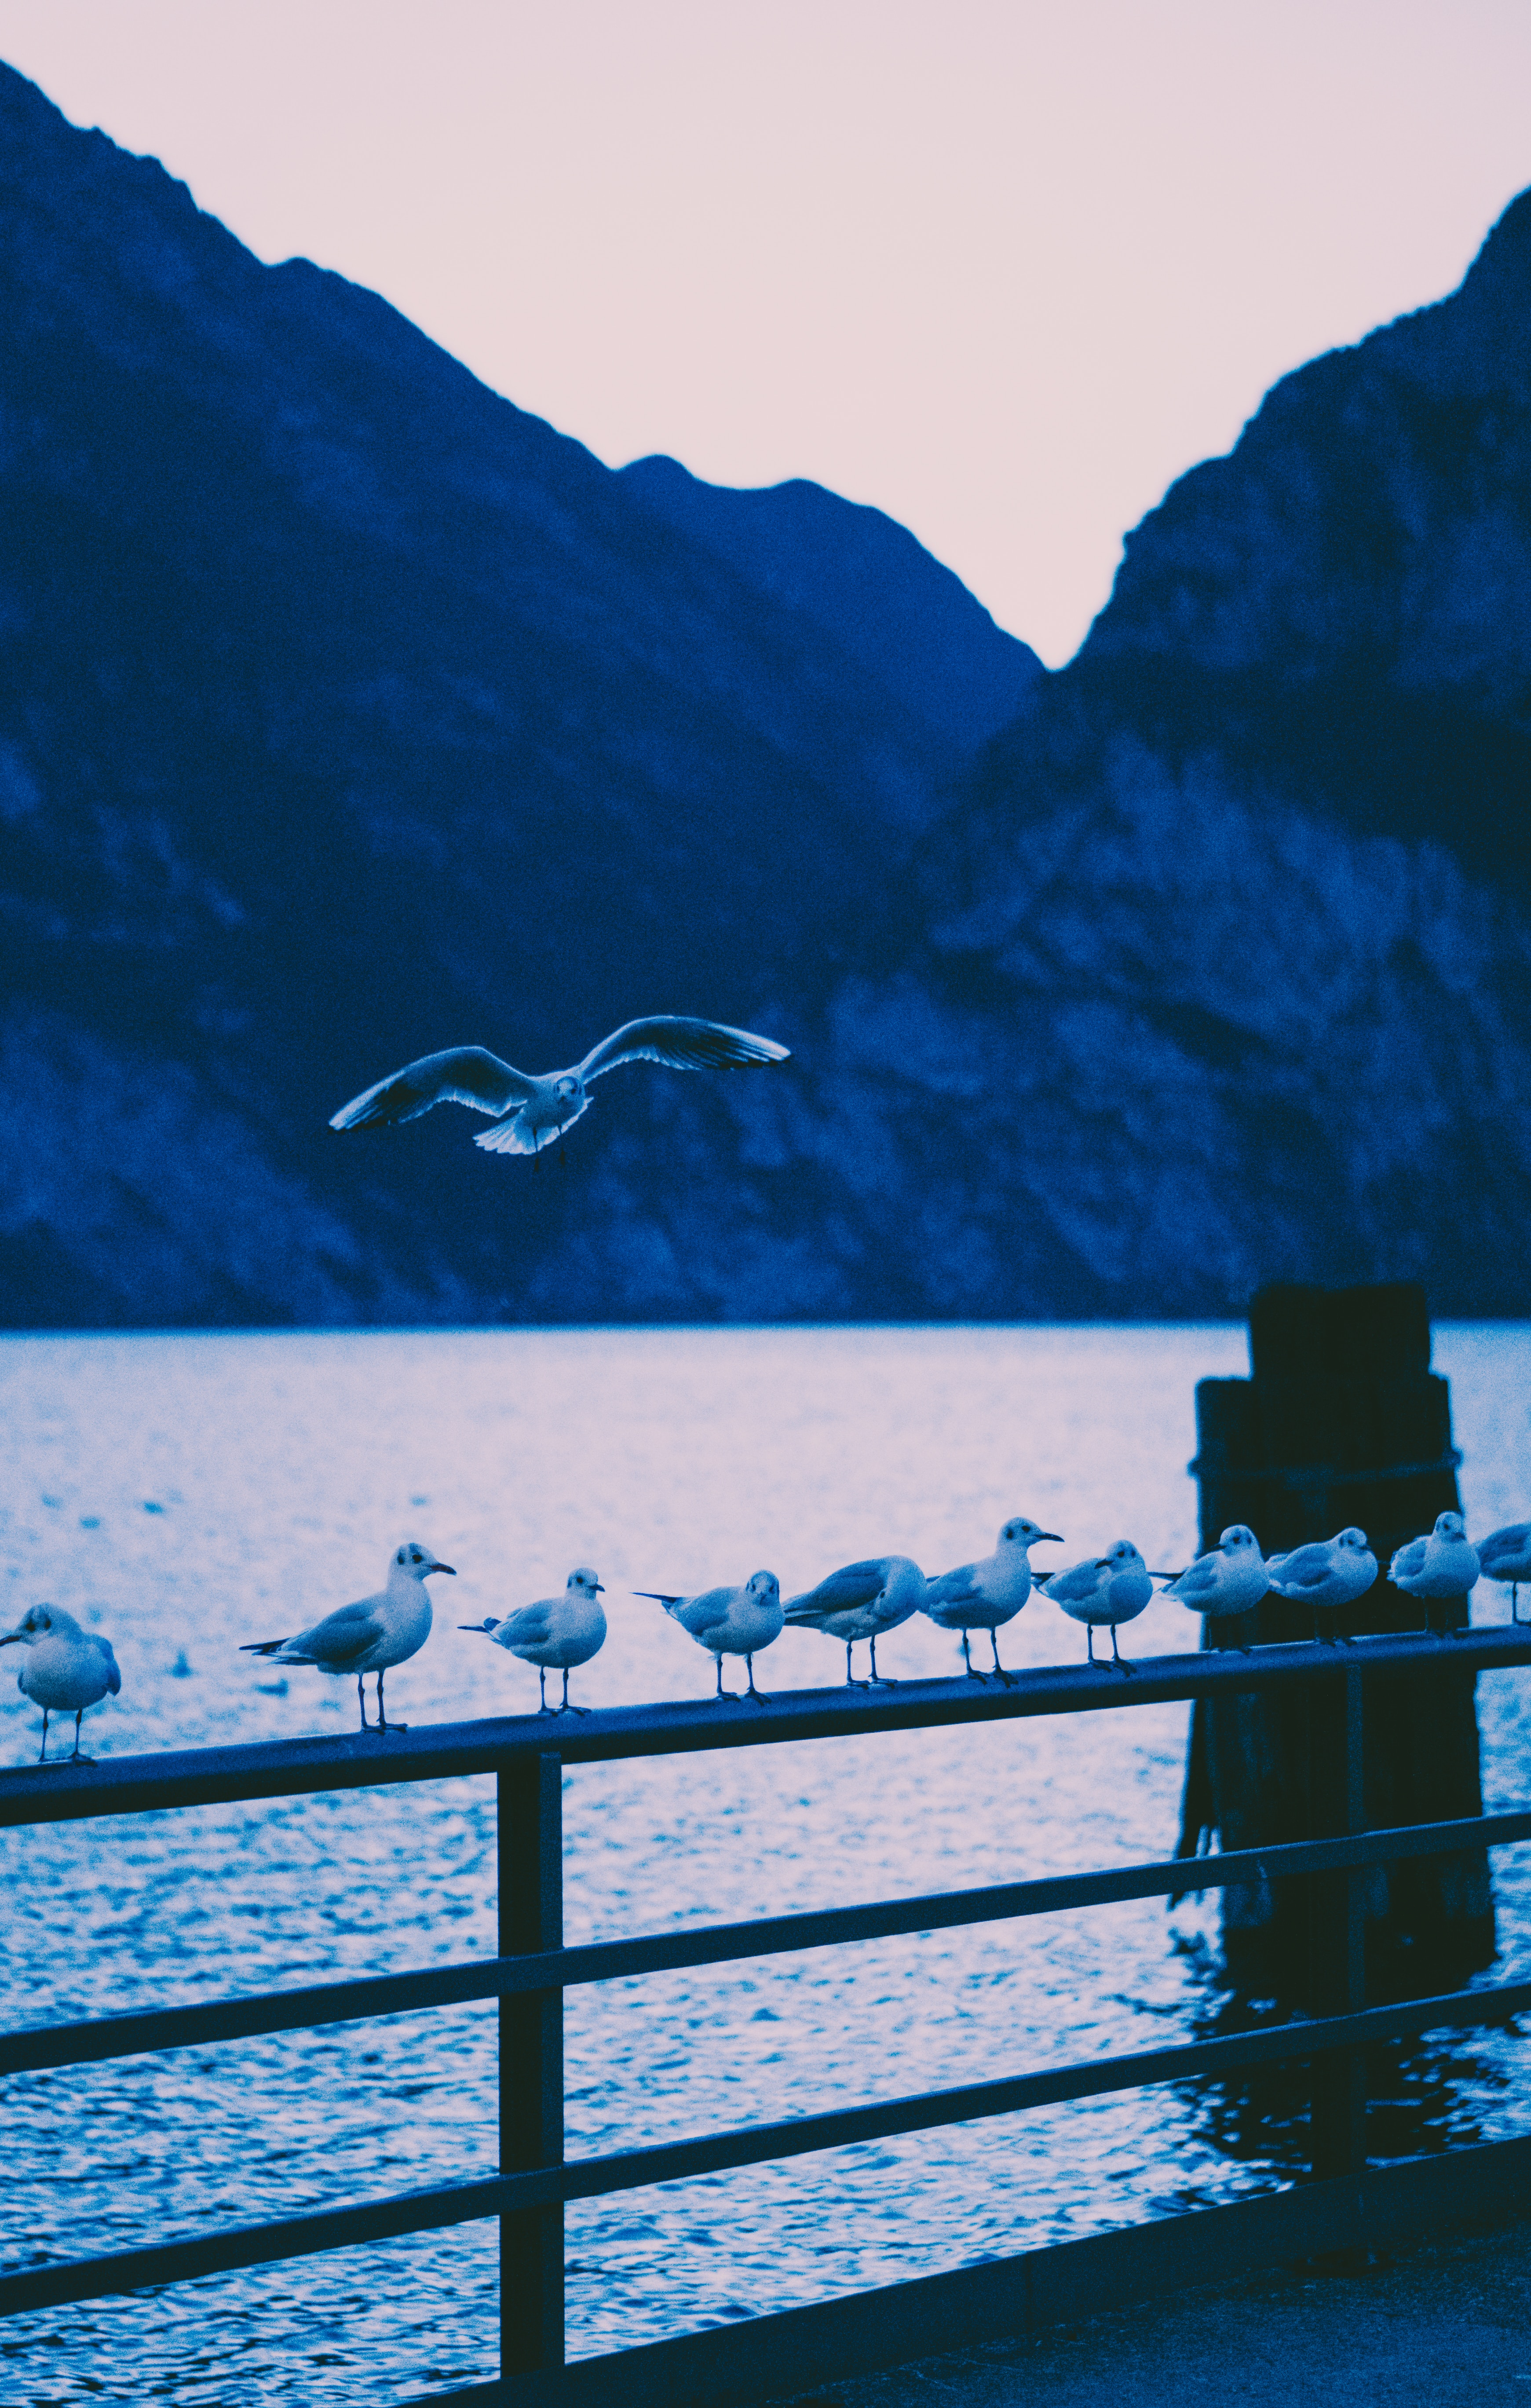 125932 download wallpaper Animals, Railings, Handrail, Sea, Shore, Bank, Birds, Seagulls screensavers and pictures for free